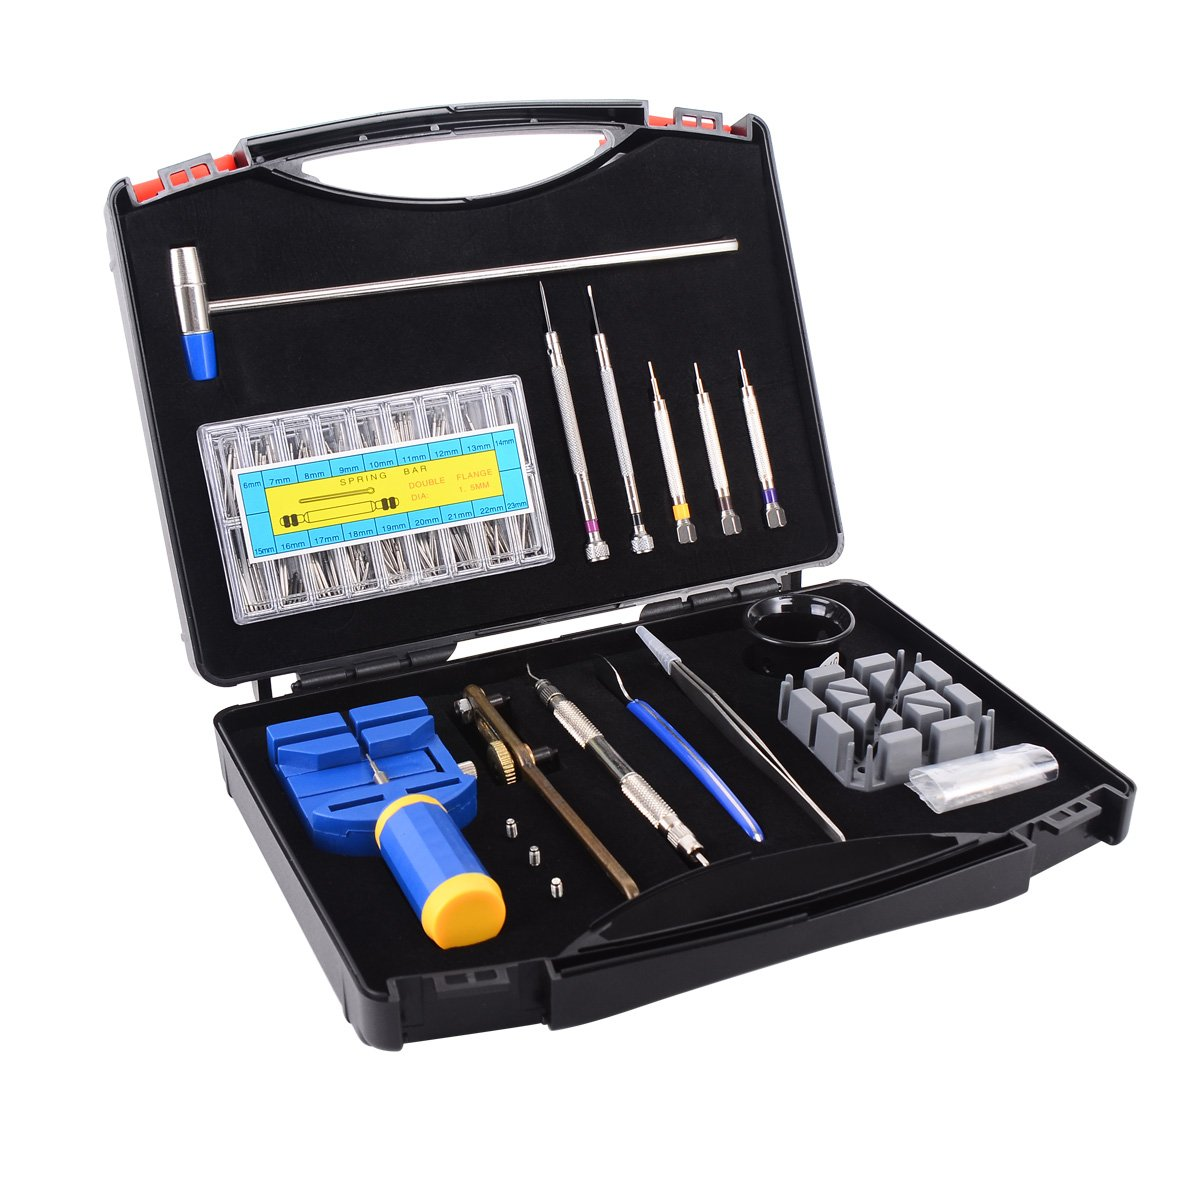 Ohuhu 175 PCS Watch Repair Tool Kit Case, Professional Spring Bar Tool Set, Watch Band Link Pin Tools by Ohuhu (Image #1)